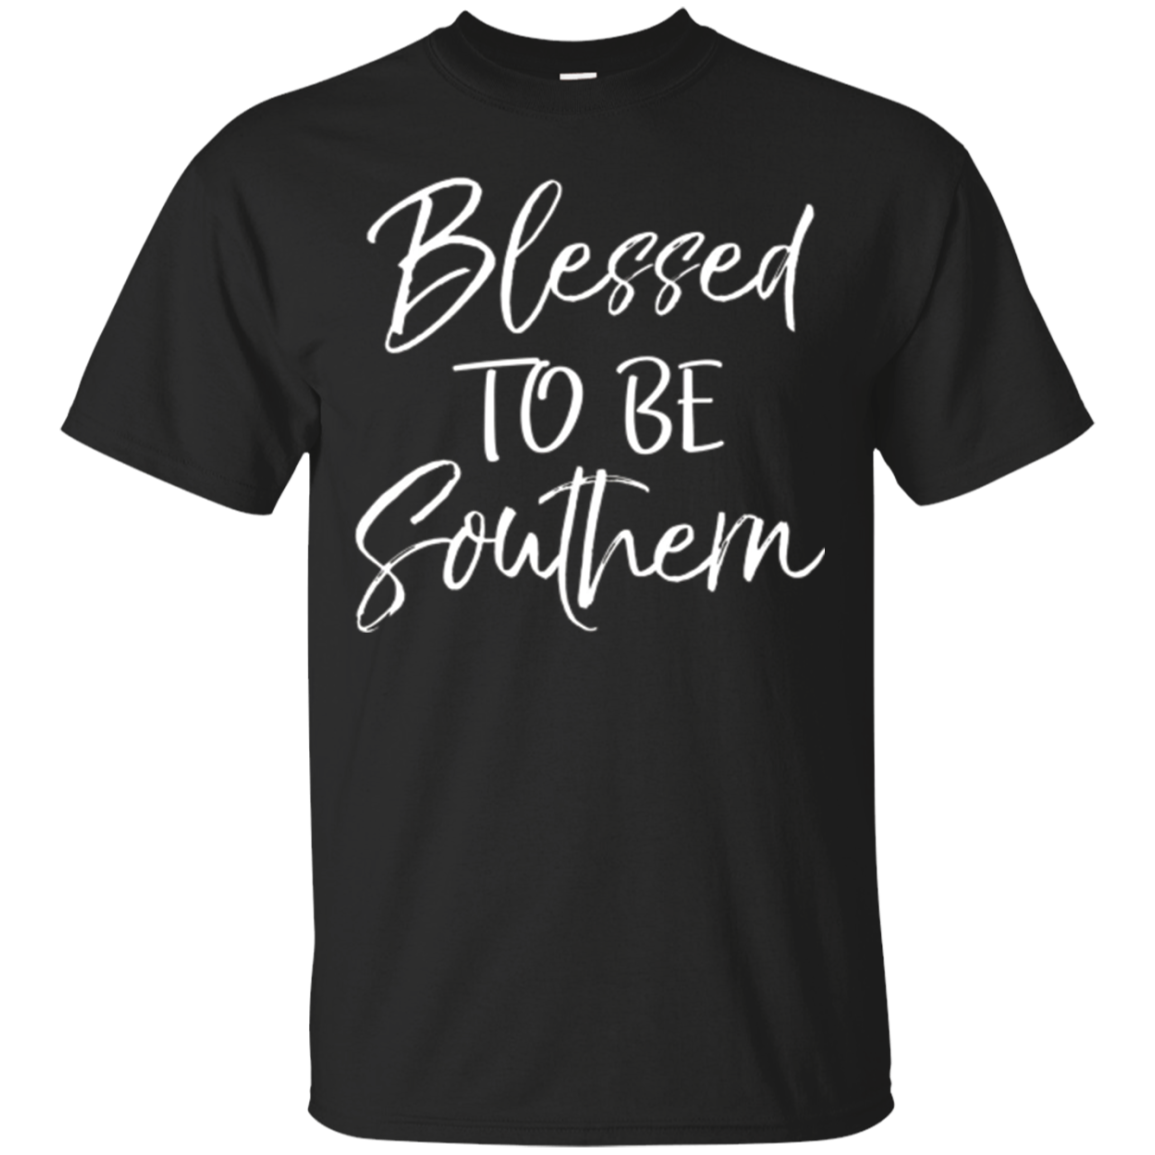 Blessed to be Southern Shirt Vintage Design T-Shirt